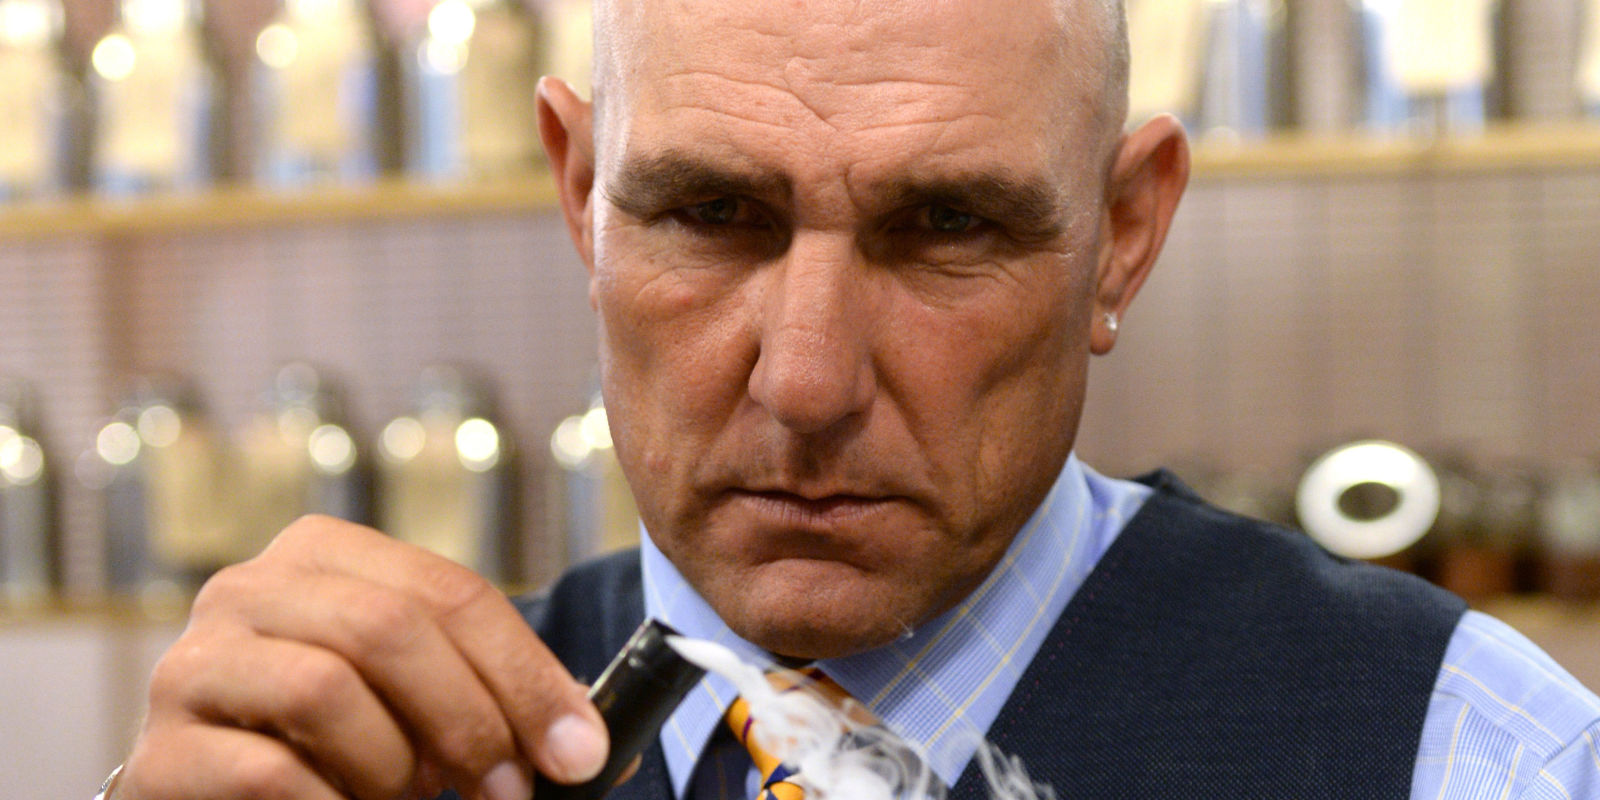 vinnie jones - photo #50